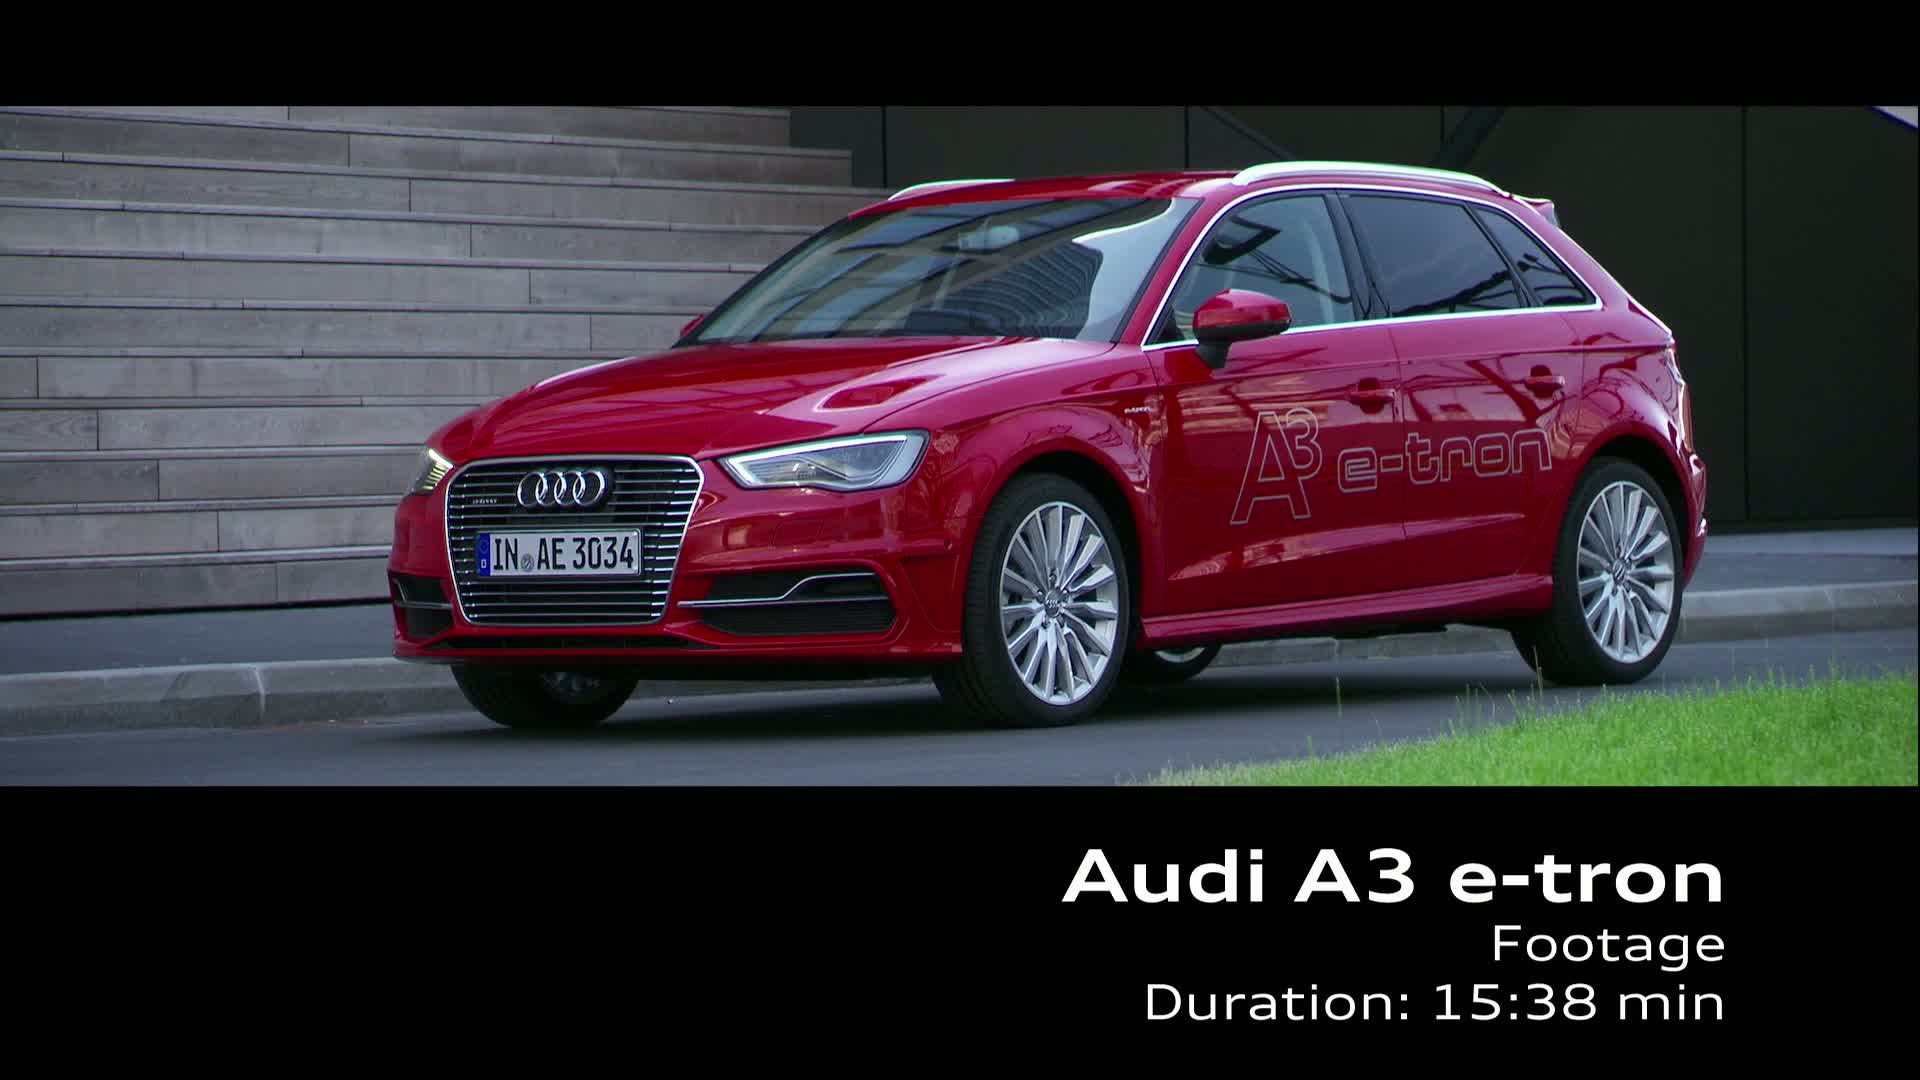 The Audi A3 Sportback e-tron - Footage